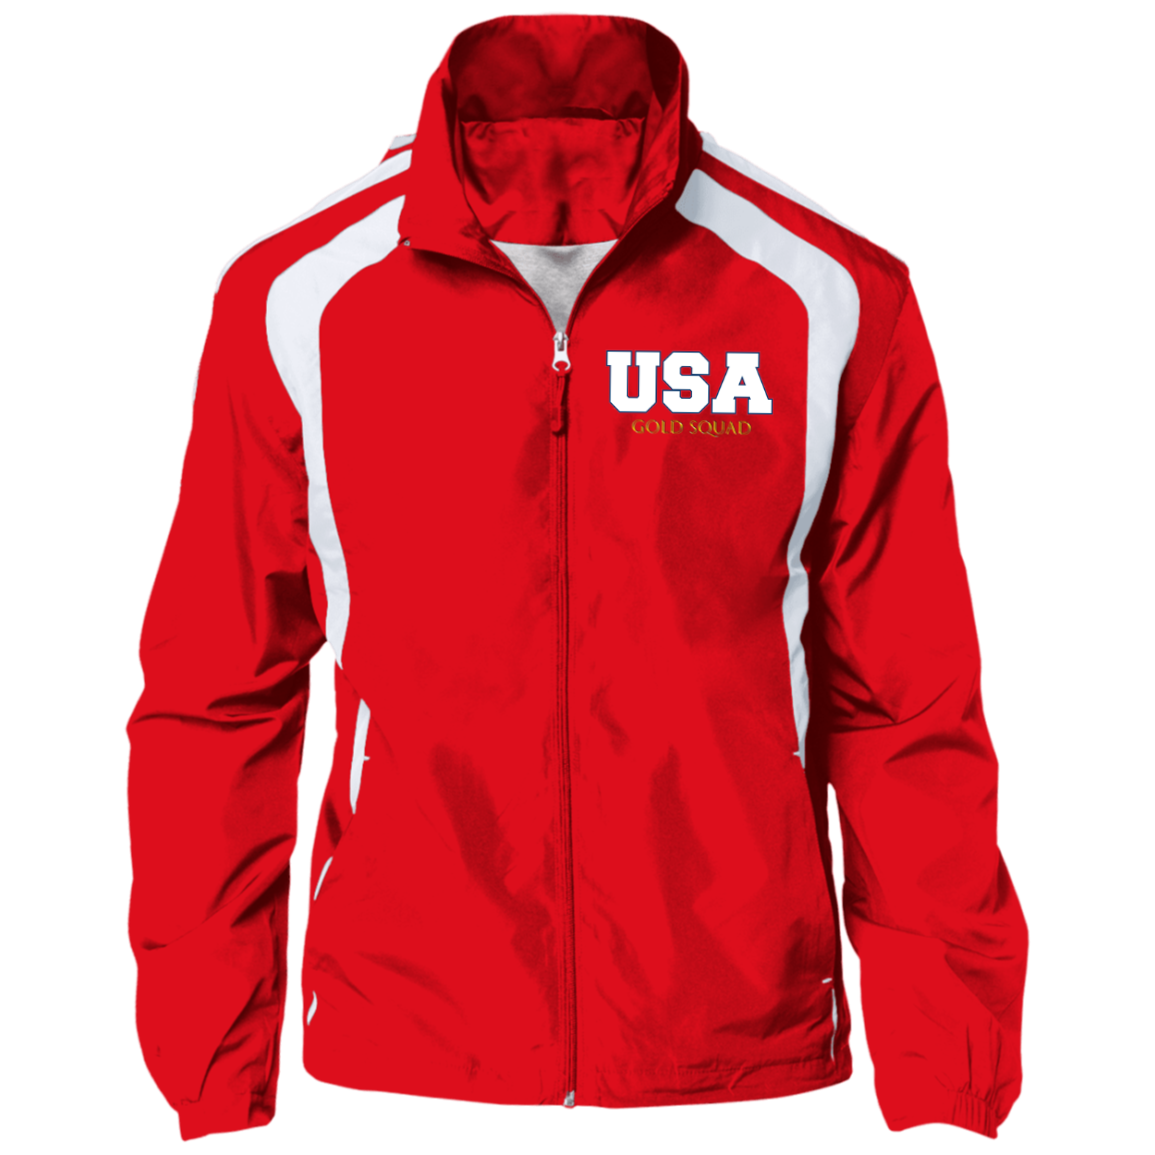 Mens USA Gold Squad Jersey-Lined Jacket